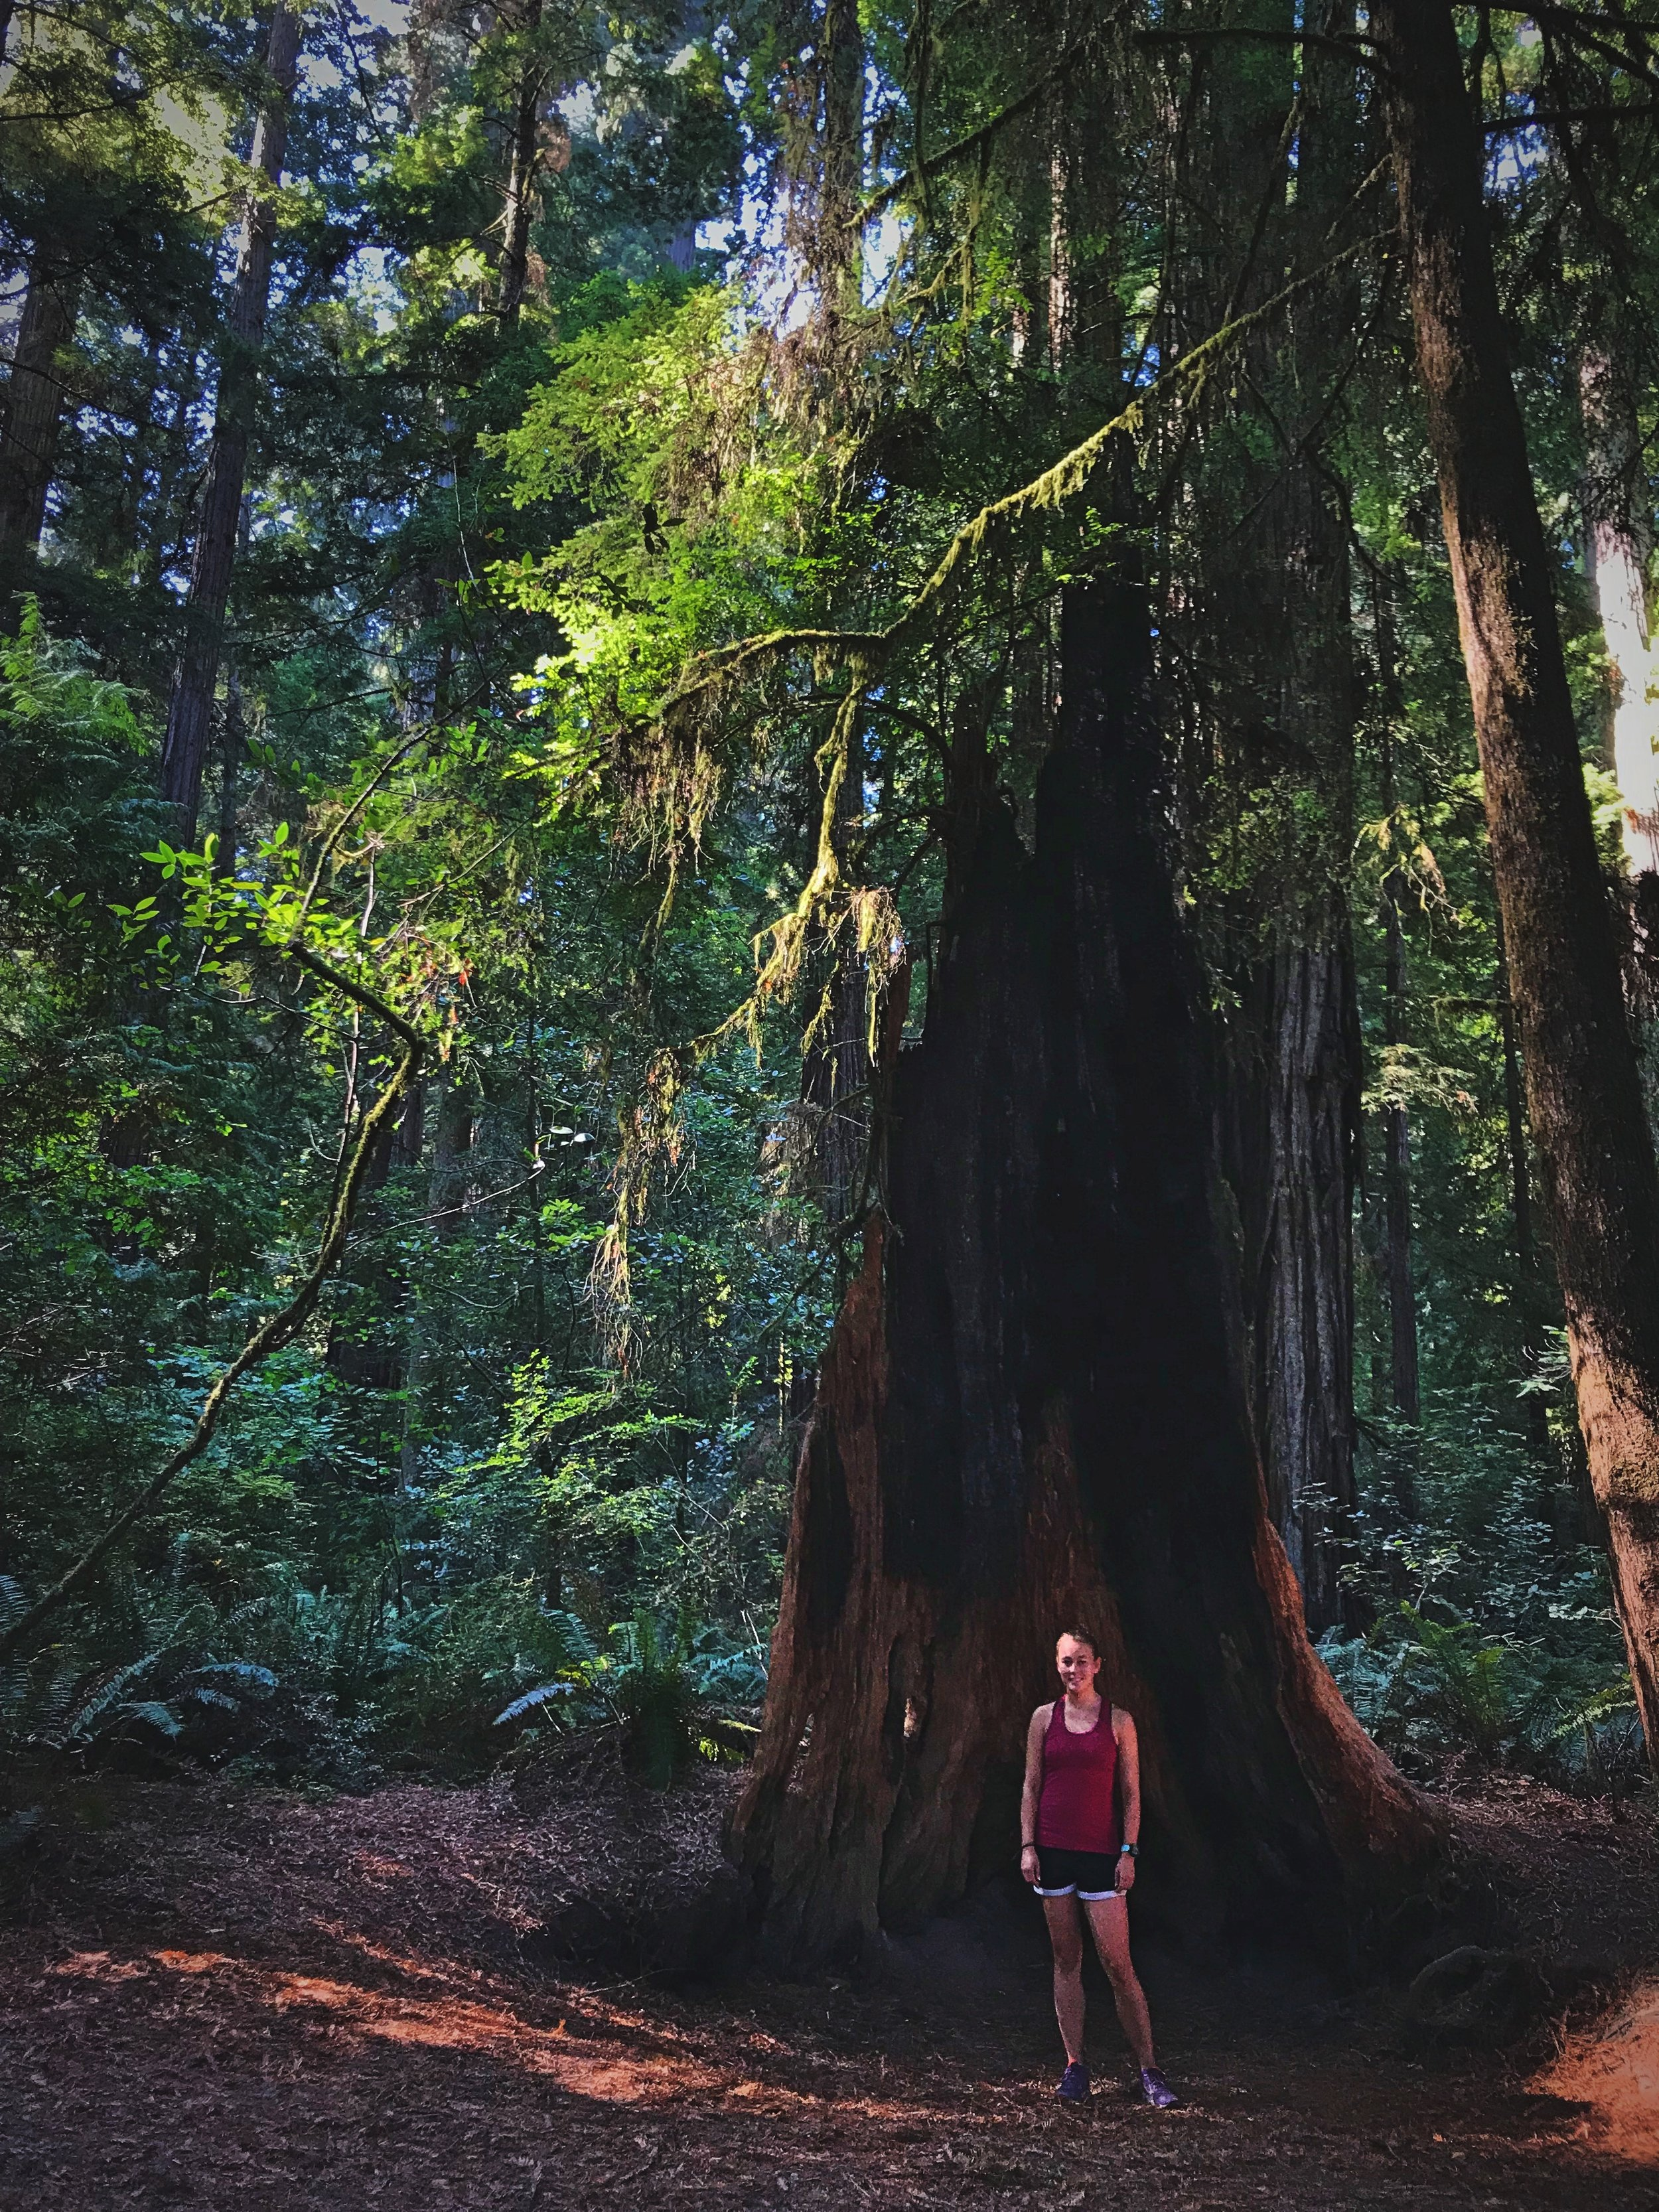 Throughout the Redwood Forest there are many burnt or partially burnt trees.